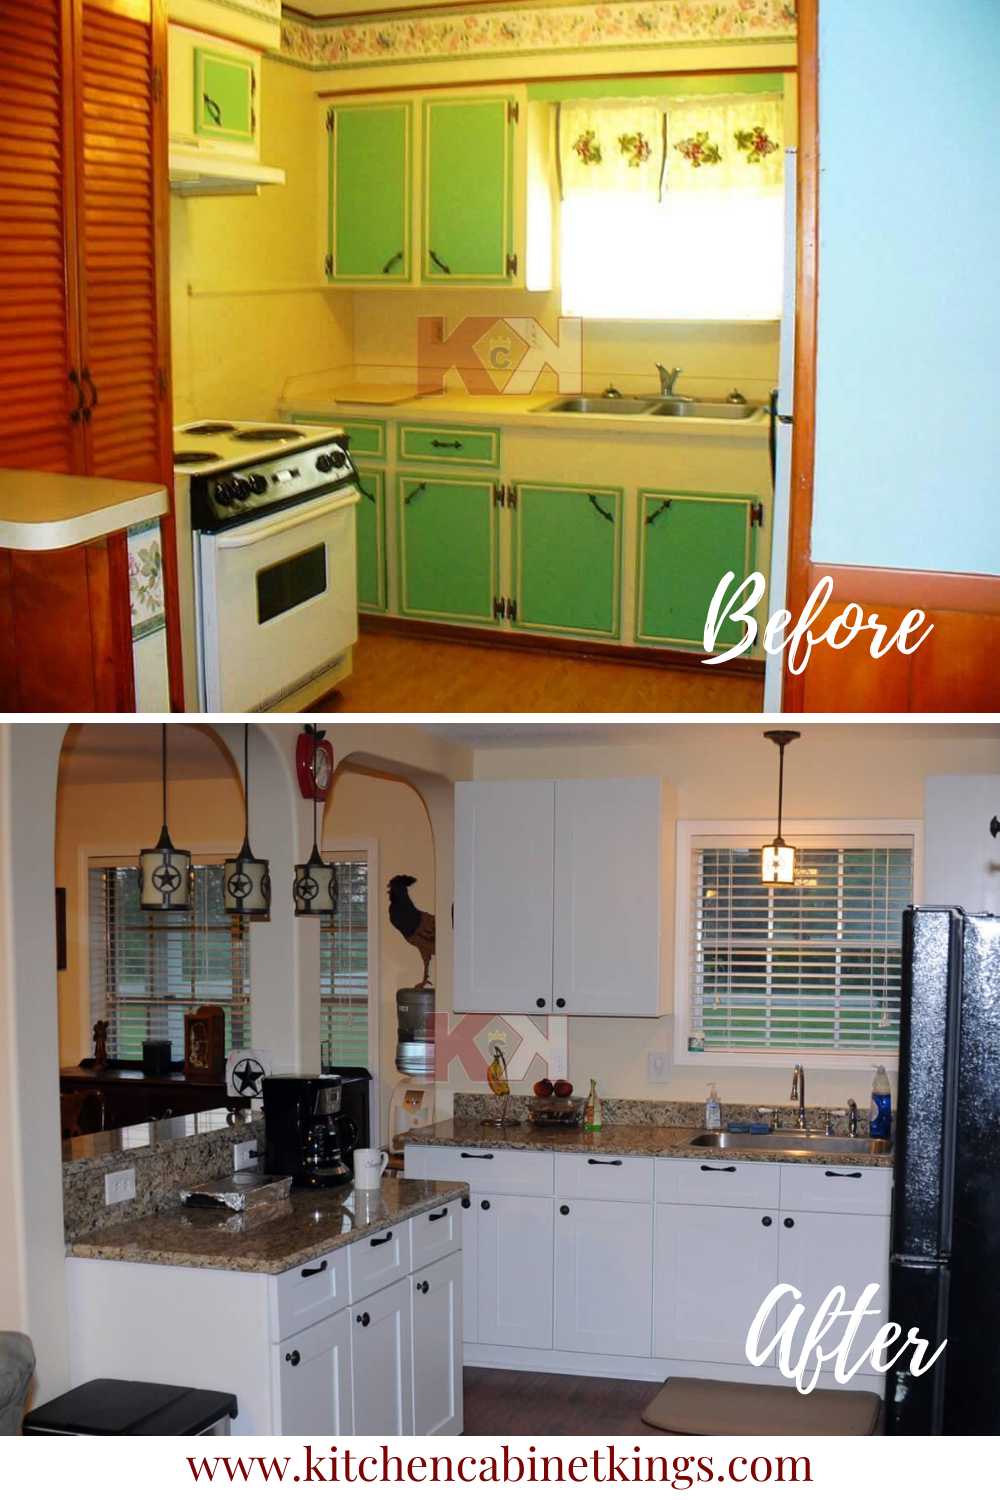 Kitchen S Before And After Renovation In 2020 Kitchen Cabinet Remodel Before After Kitchen Cabinet Remodel